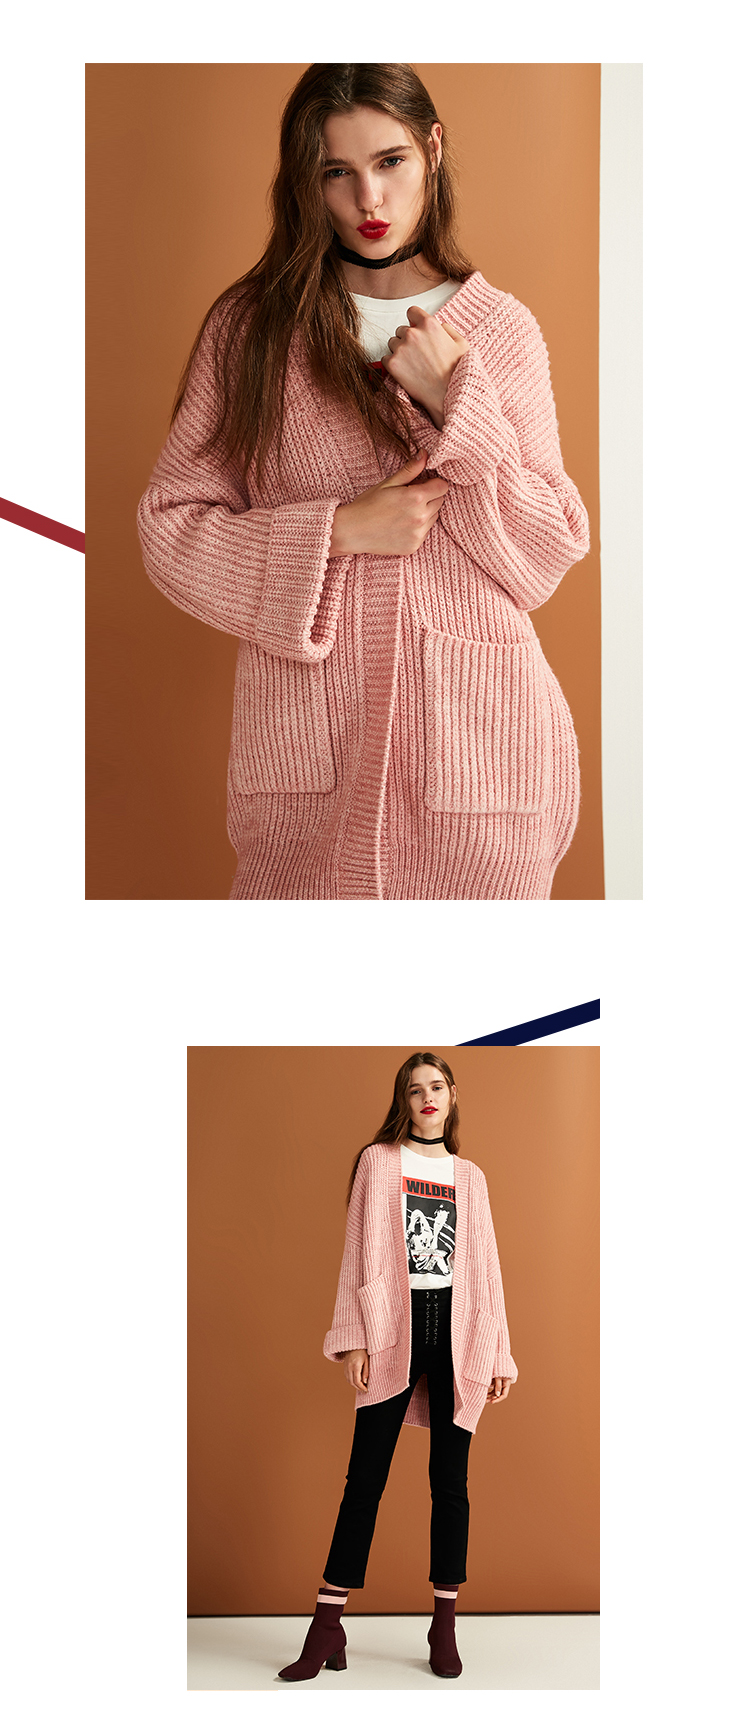 ONLY womens' autumn new cardigan long sweater sweater women Cuff design Cardigan design|11833B504 9